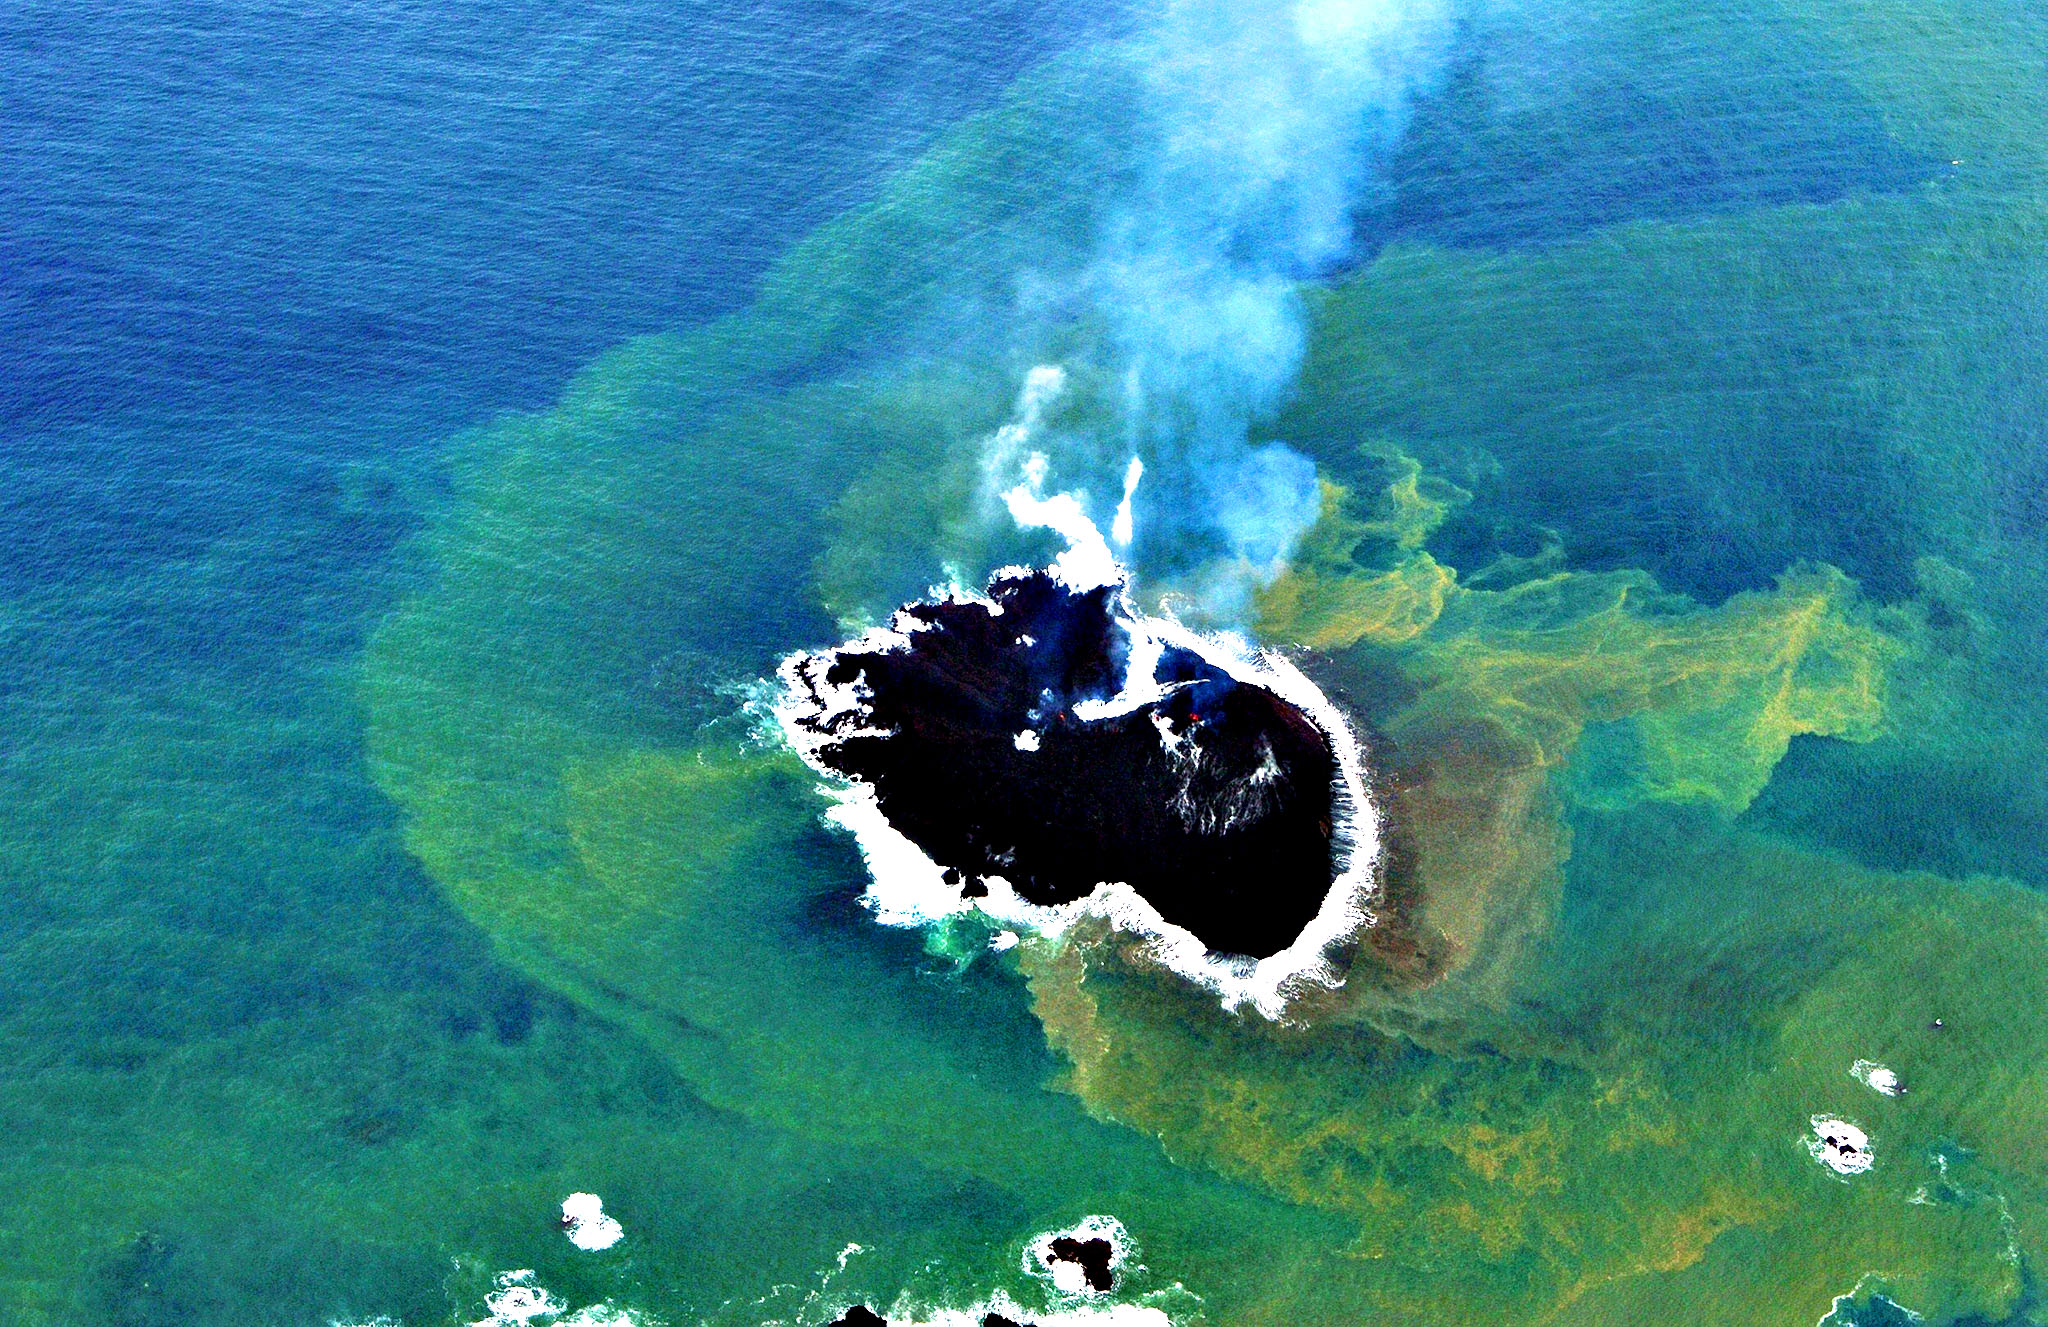 A newly created small islet near Nishinoshima island of the Ogasawara island chain, 1,000 kilometres south of Tokyo.  A new island created by a volcanic eruption off Japan's coast is here to stay -- for now at least, scientists said on December 10, adding the new landmass could withstand erosion for several years.